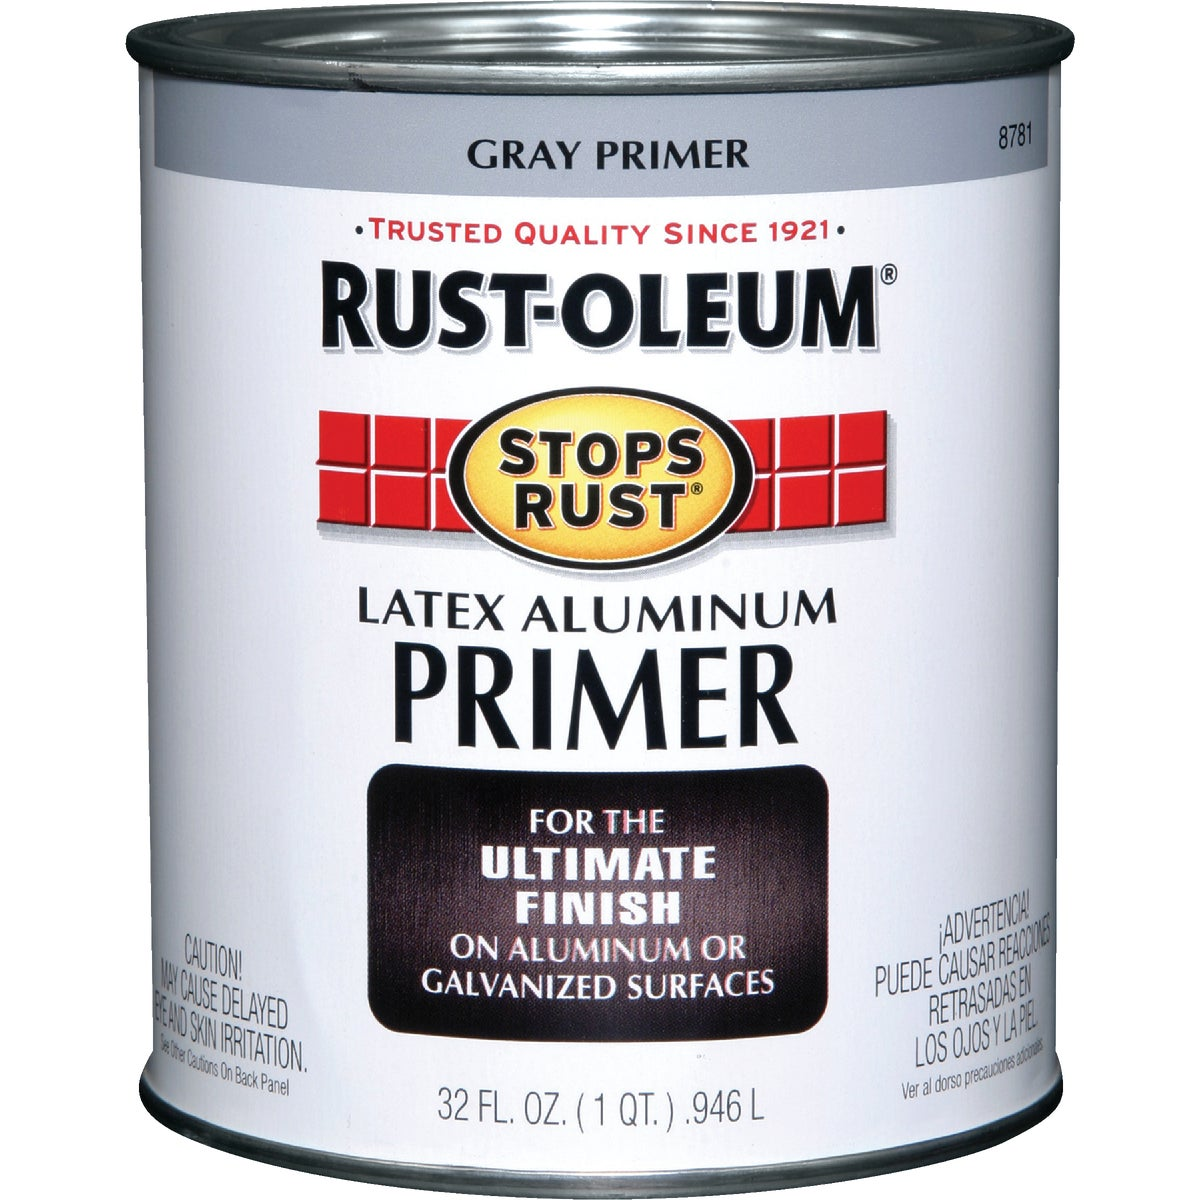 LATEX ALUMINUM PRIMER - 8781502 by Rustoleum